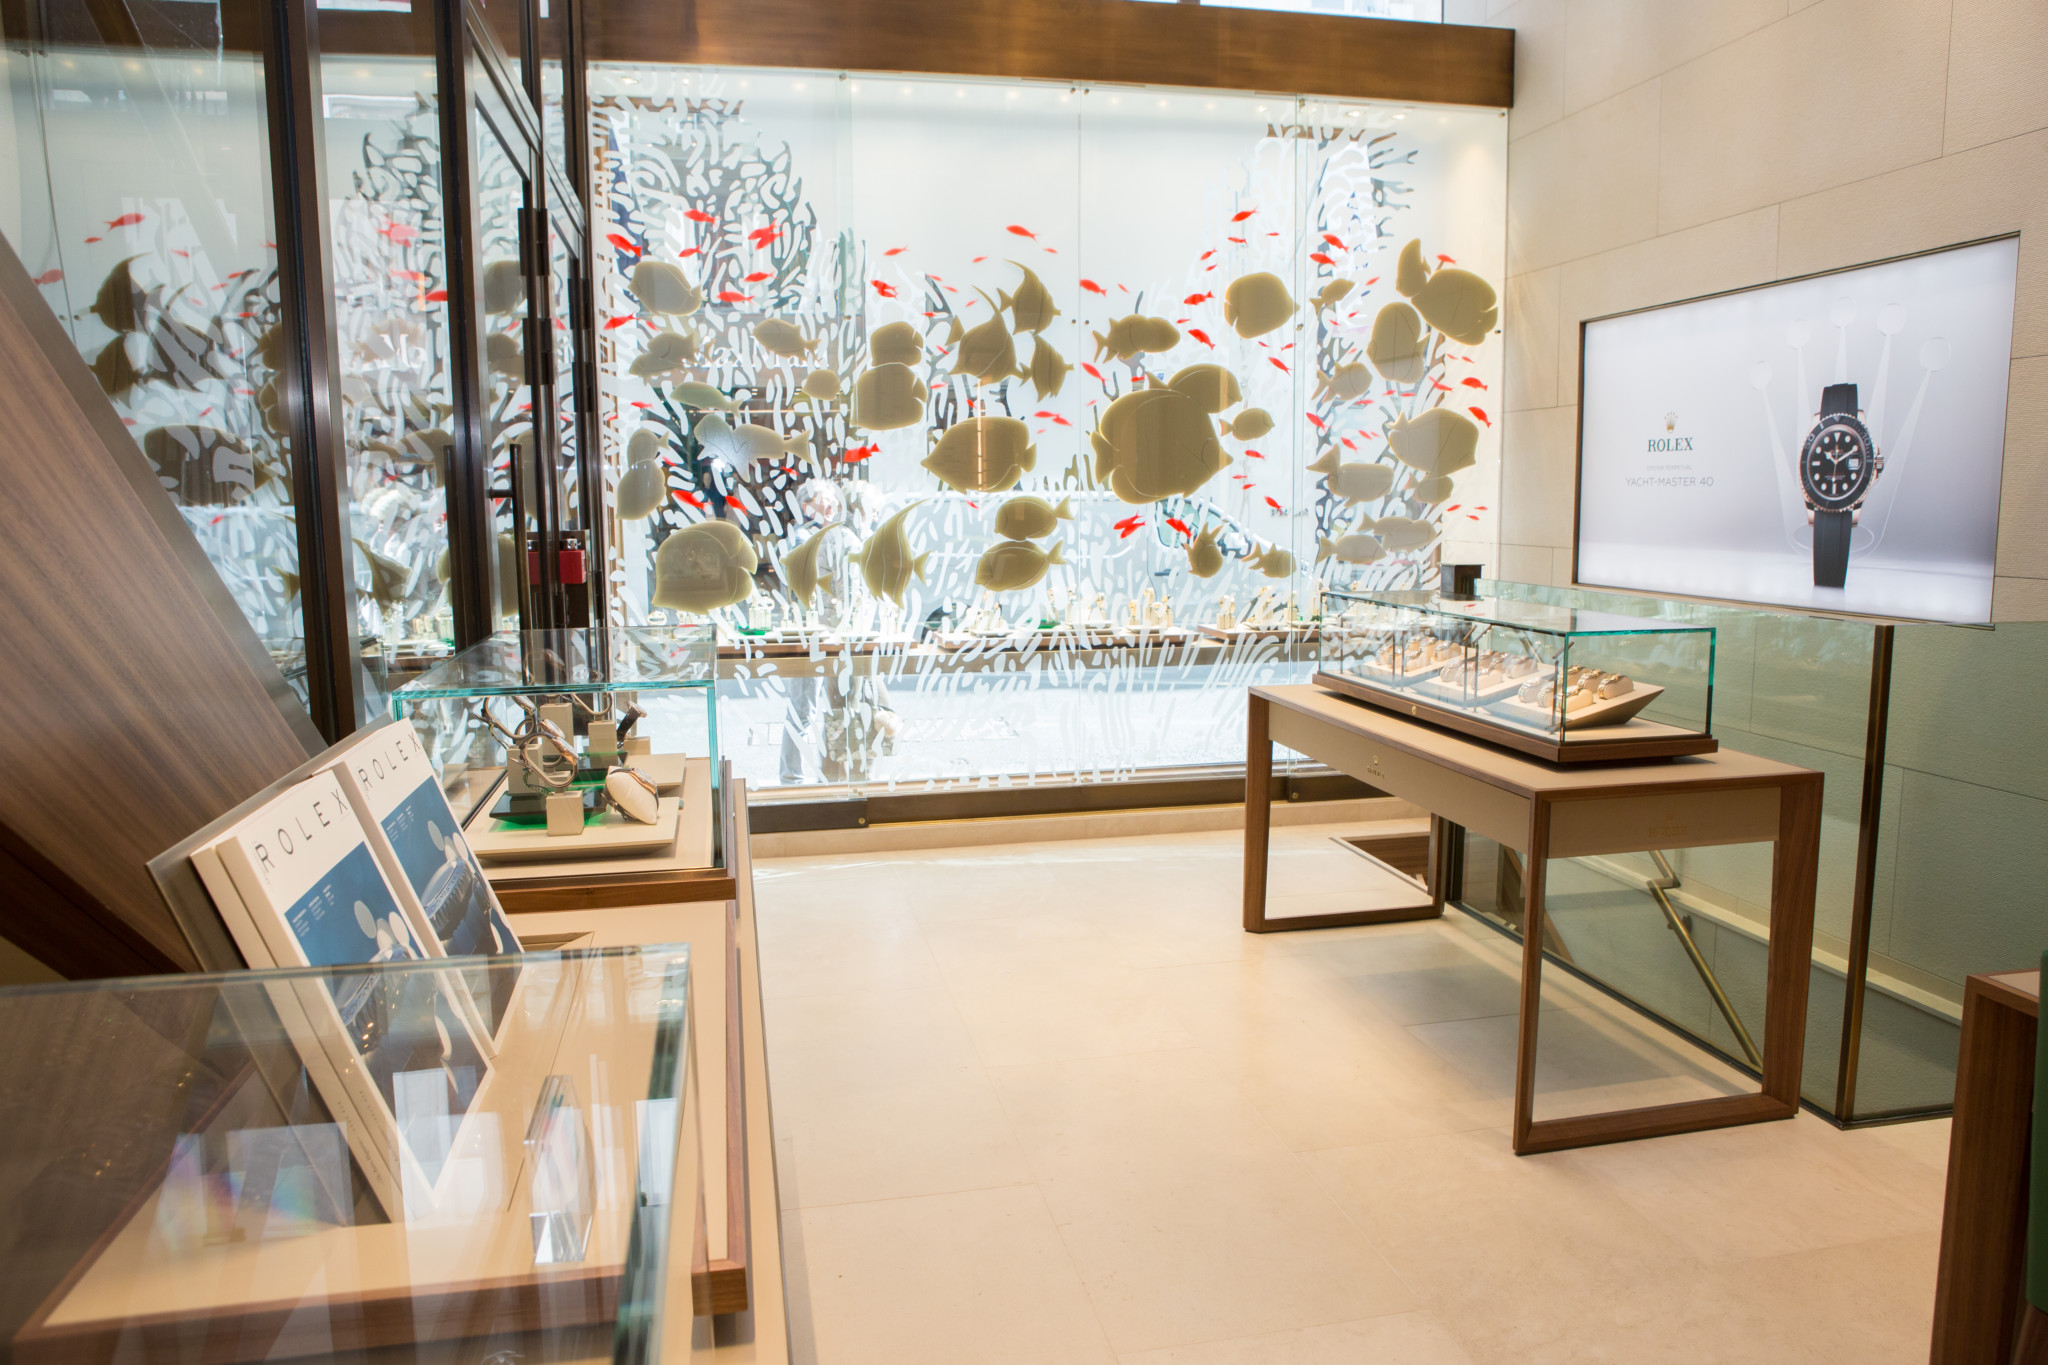 Rolex Boutique Opening Old Bond St-4310